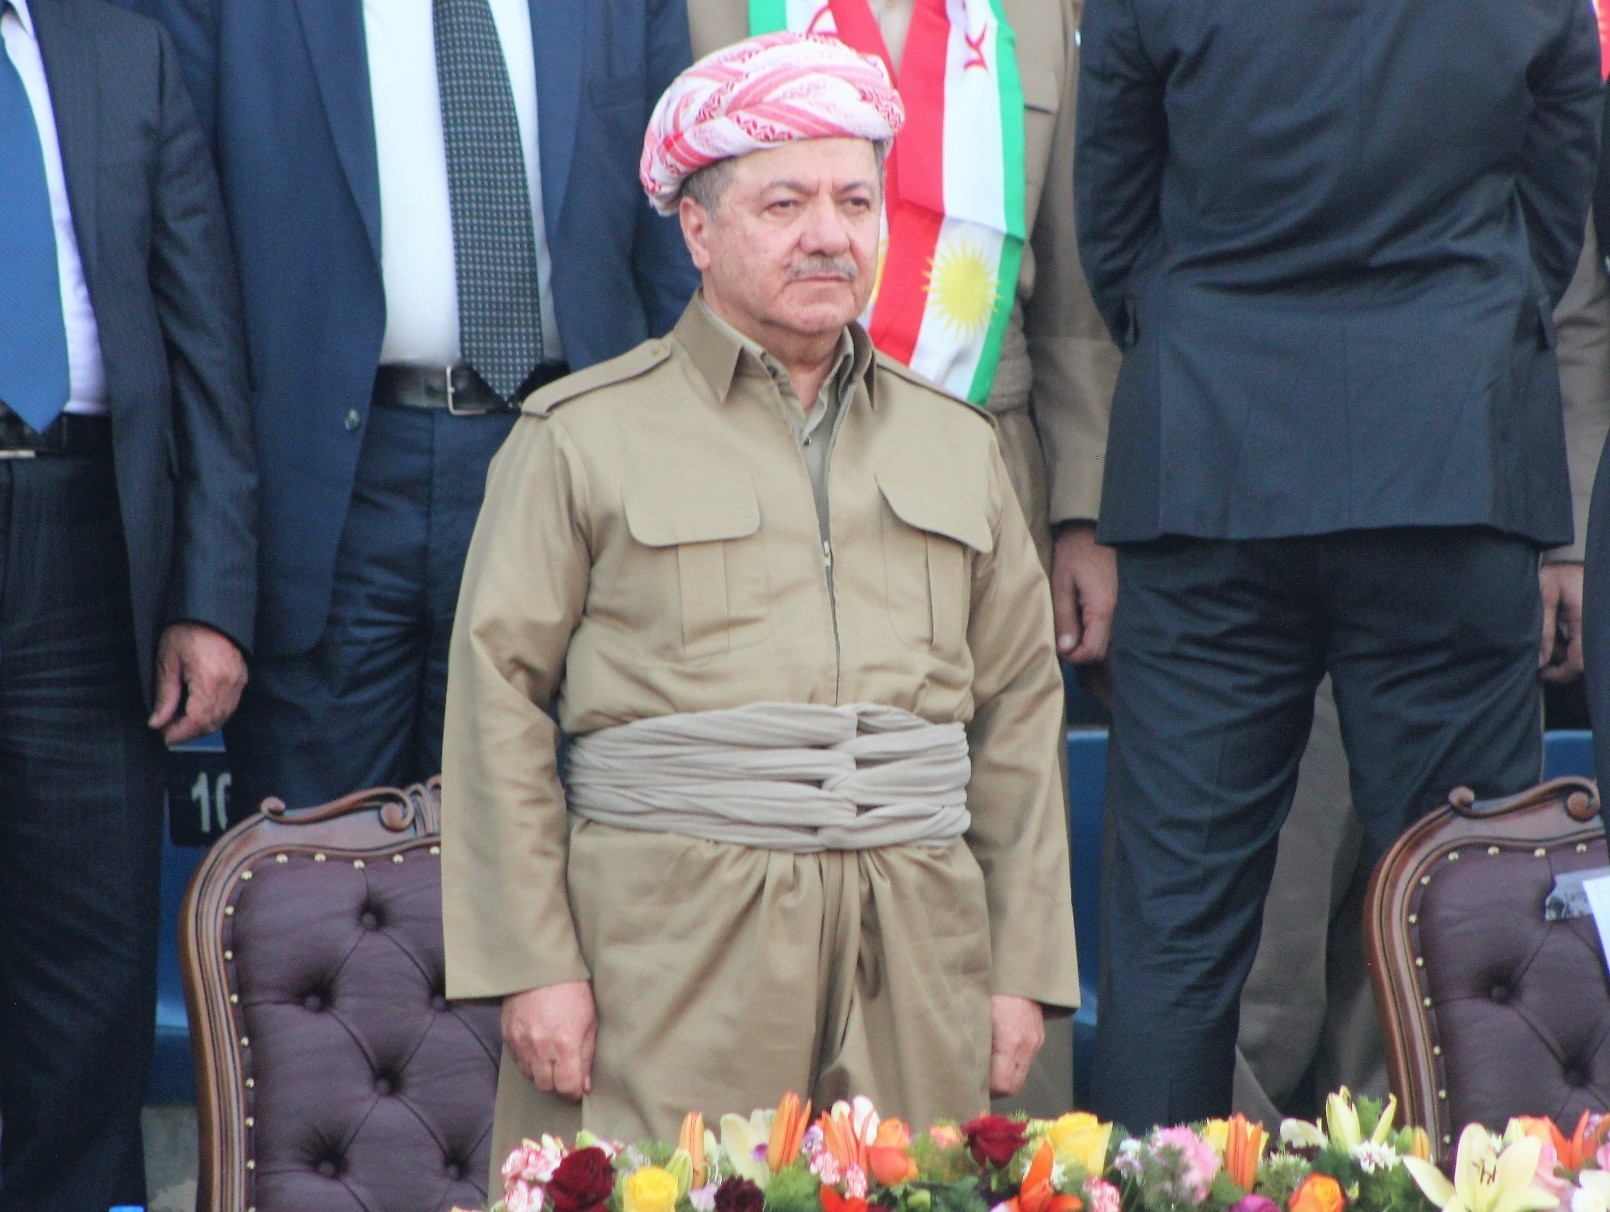 Despite calls from Turkey, the U.S., Iraq, Iran, and the U.K. to postpone the independence vote on Sept. 25, KRG leader Barzani says there is no turning back from the referendum